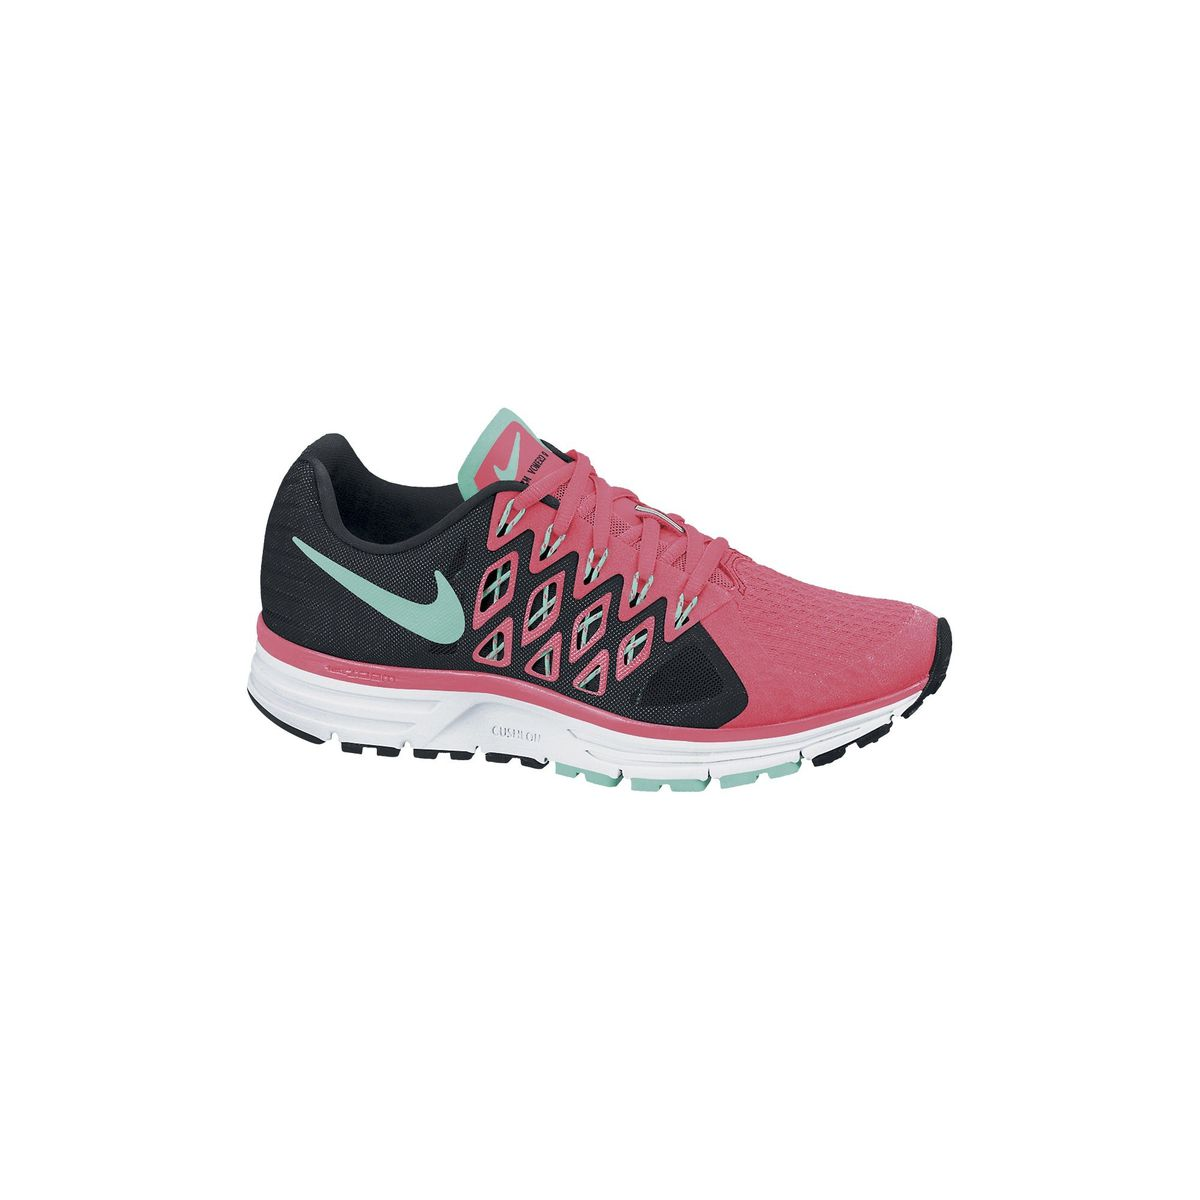 the best attitude 4399c 17043 ... official store loading zoom womens nike zoom vomero 9 running shoe .  8af44 fba68